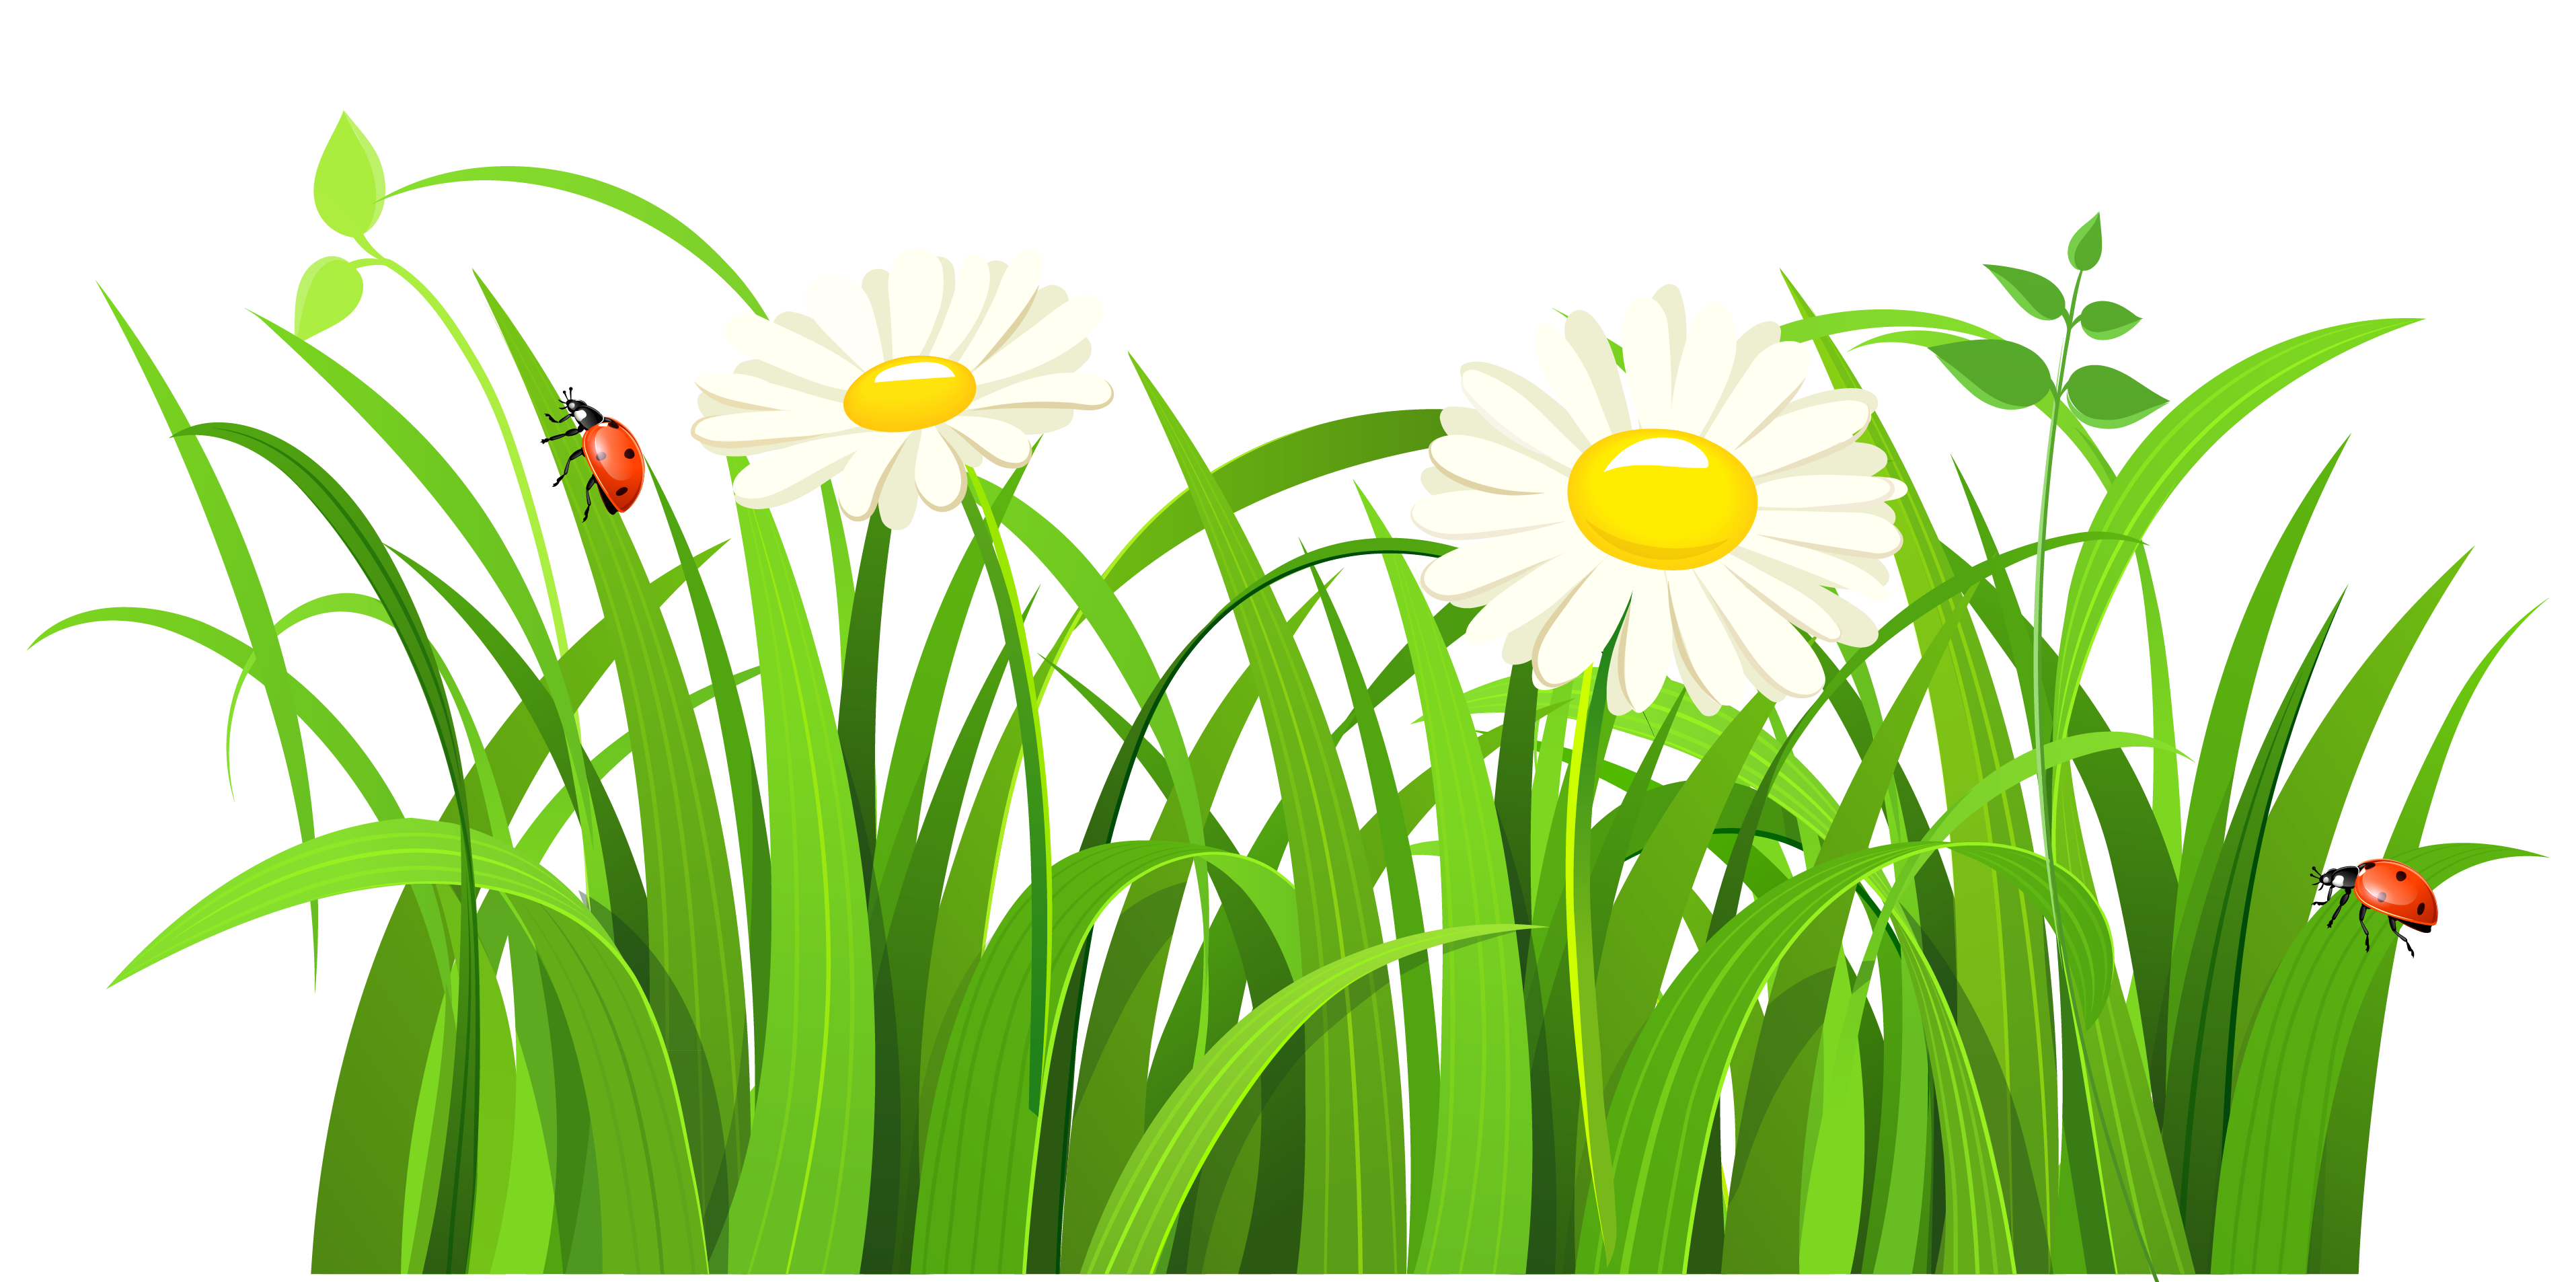 Free grass clip art pictures 3